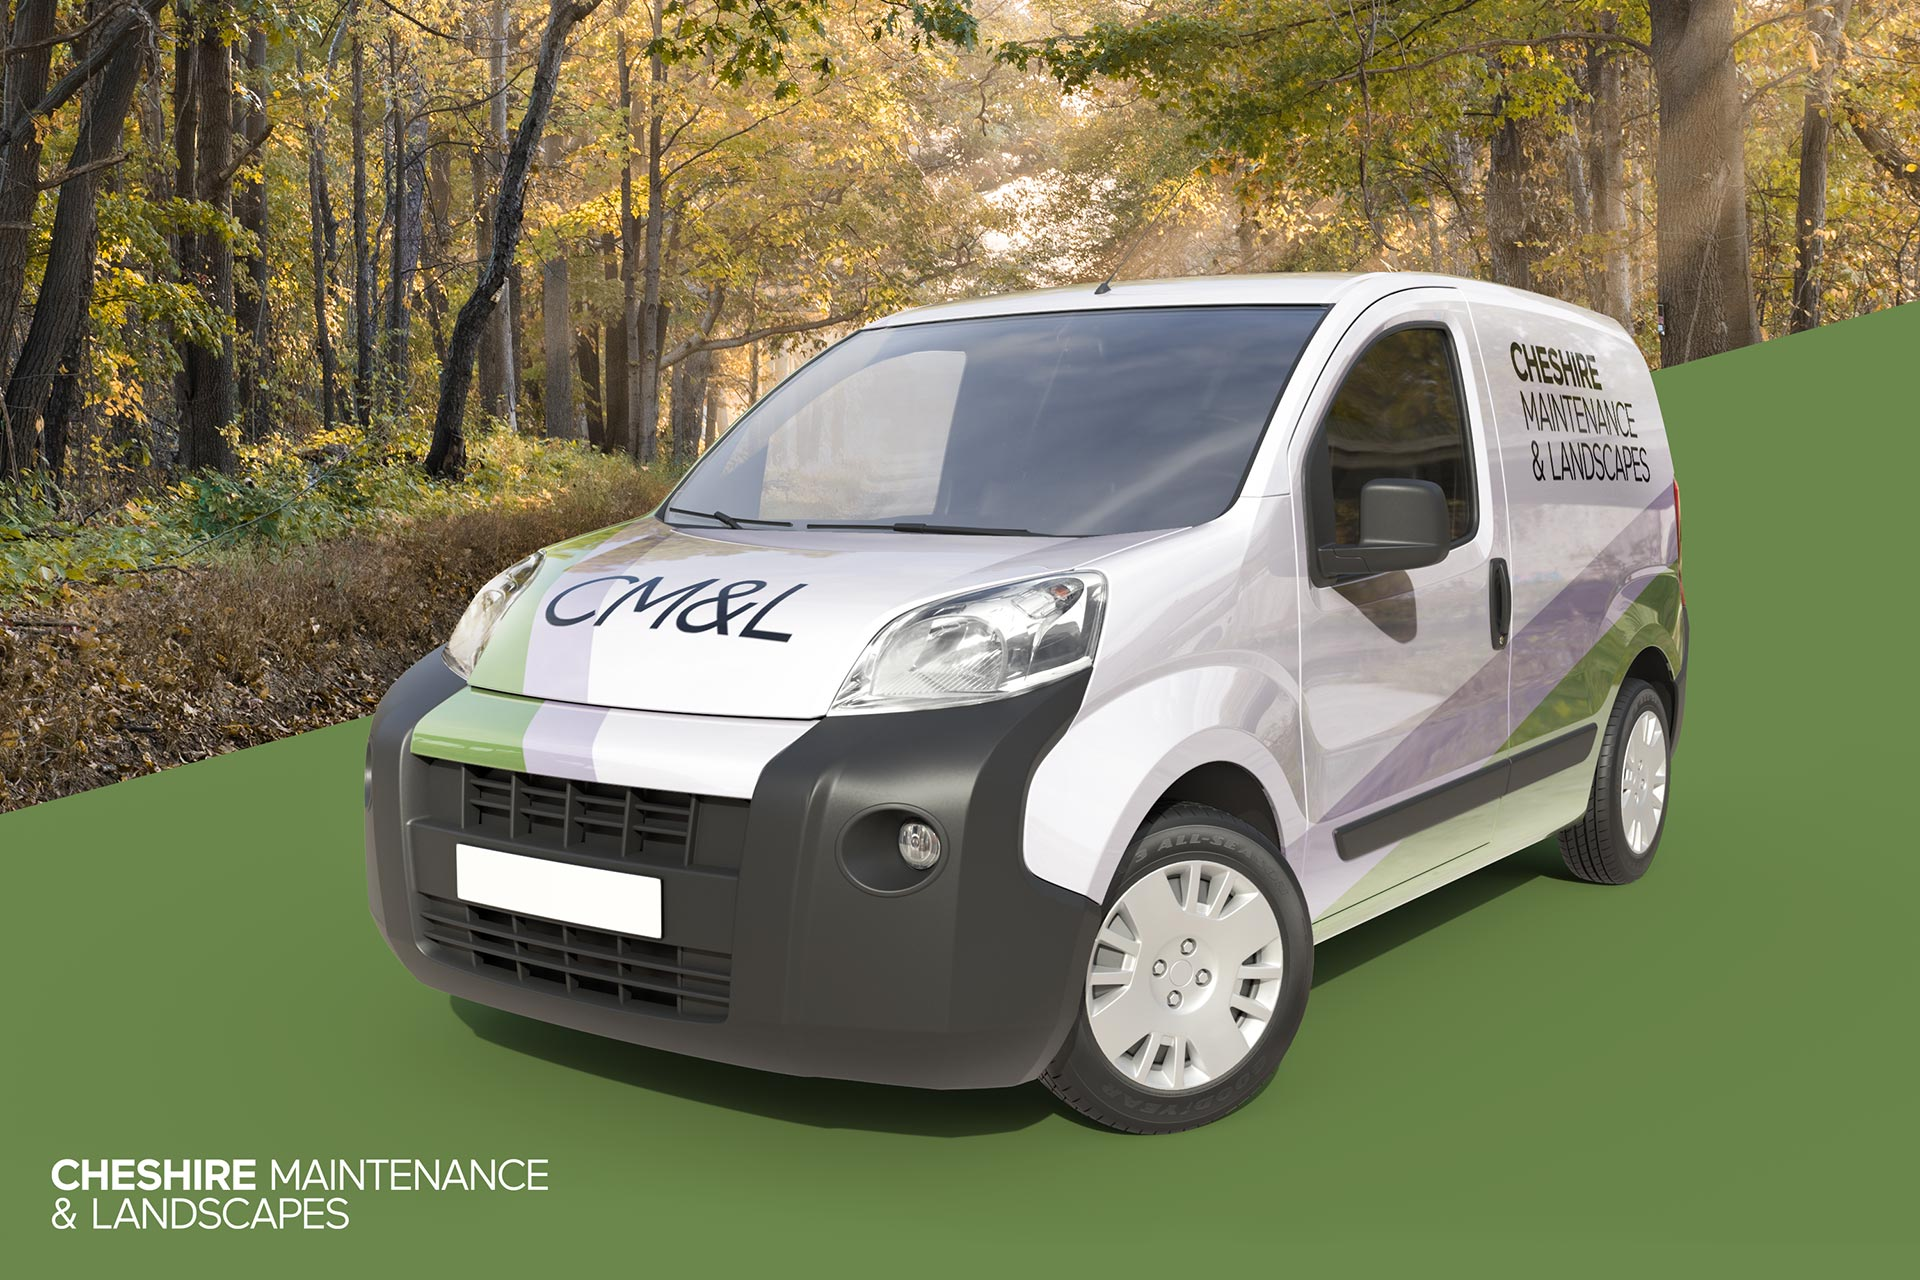 Cheshire Maintenance & Landscapes - Van Livery Design Mockup